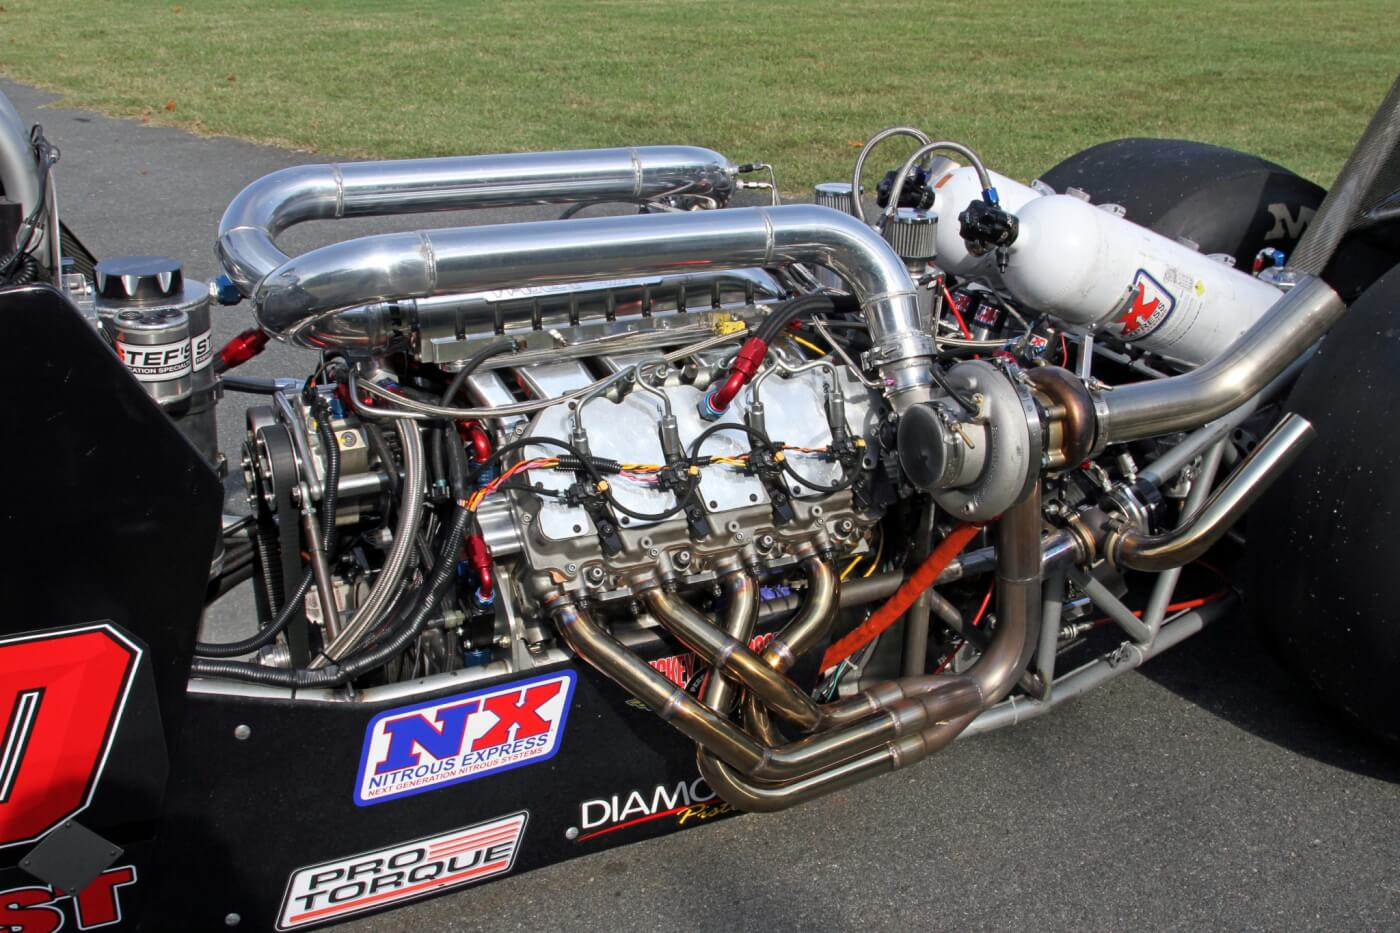 The 400 cid parallel twin turbocharged Duramax is the heart of the beast making an estimate 2,100 HP. The equal length tube headers are a work of metal crafting art and a unique sight to see on a diesel engine.